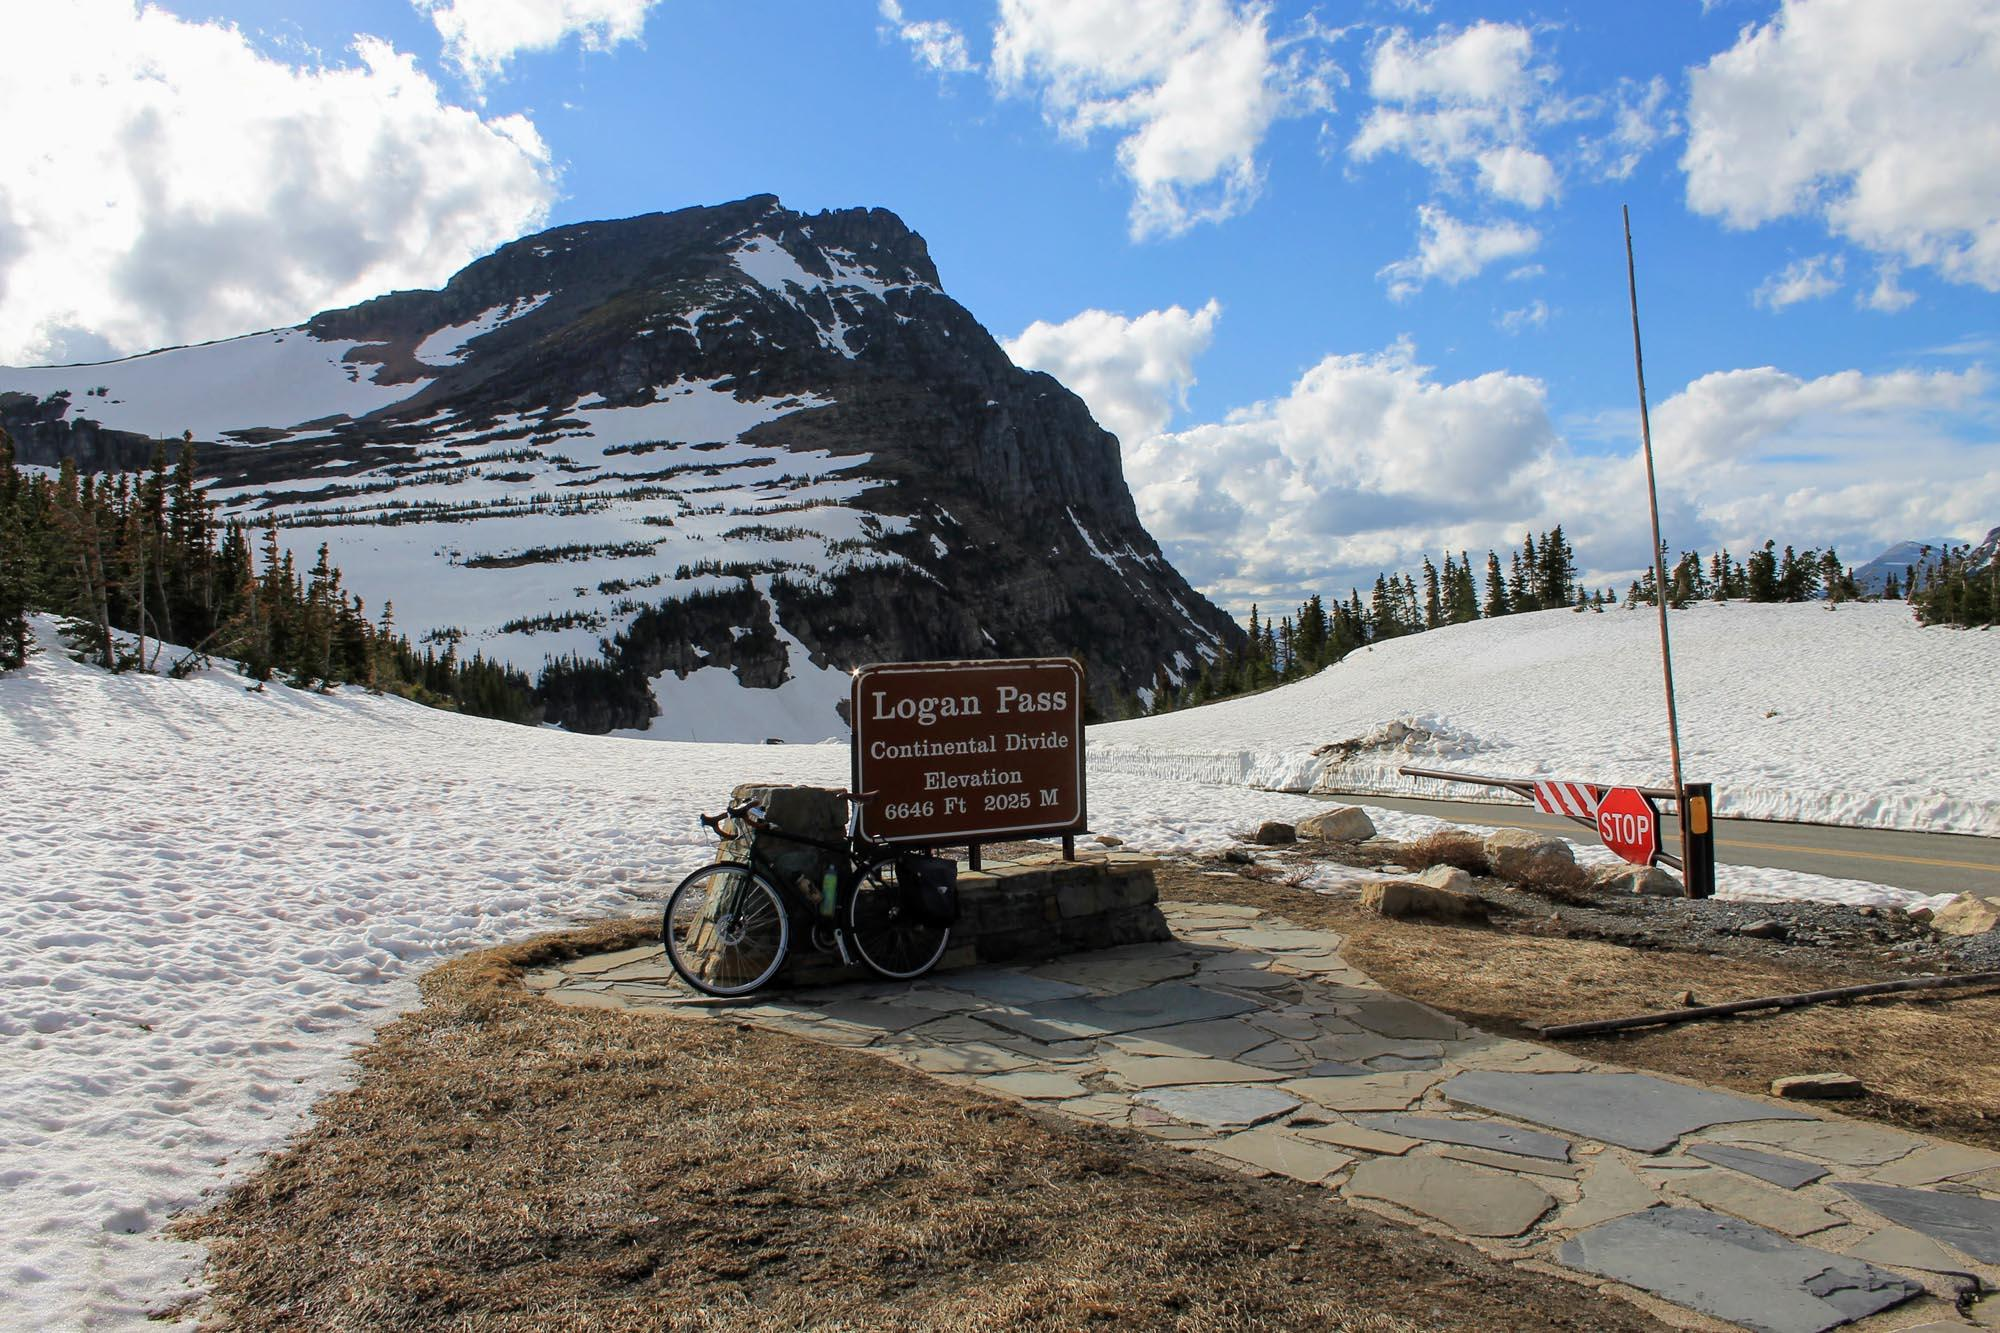 After approximately 16 miles and 3,200 vertical feet, Logan Pass awaits